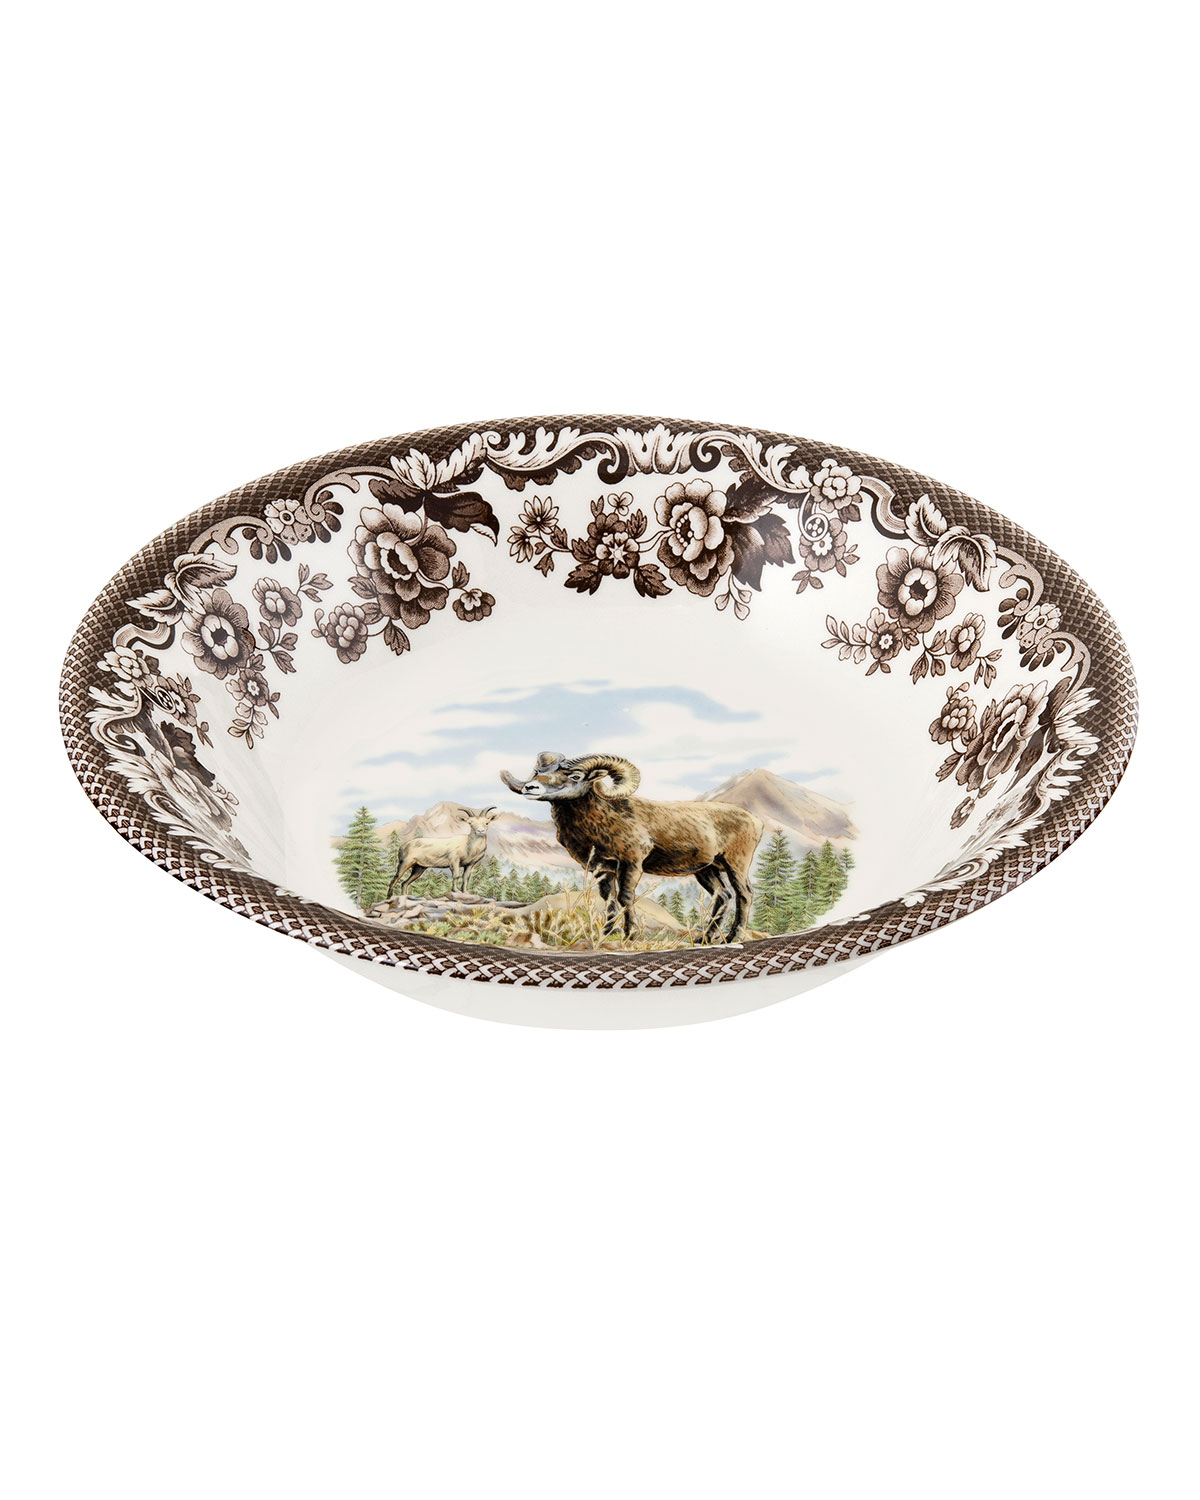 Spodewoodland Bighorn Sheep Ascot Cereal Bowl